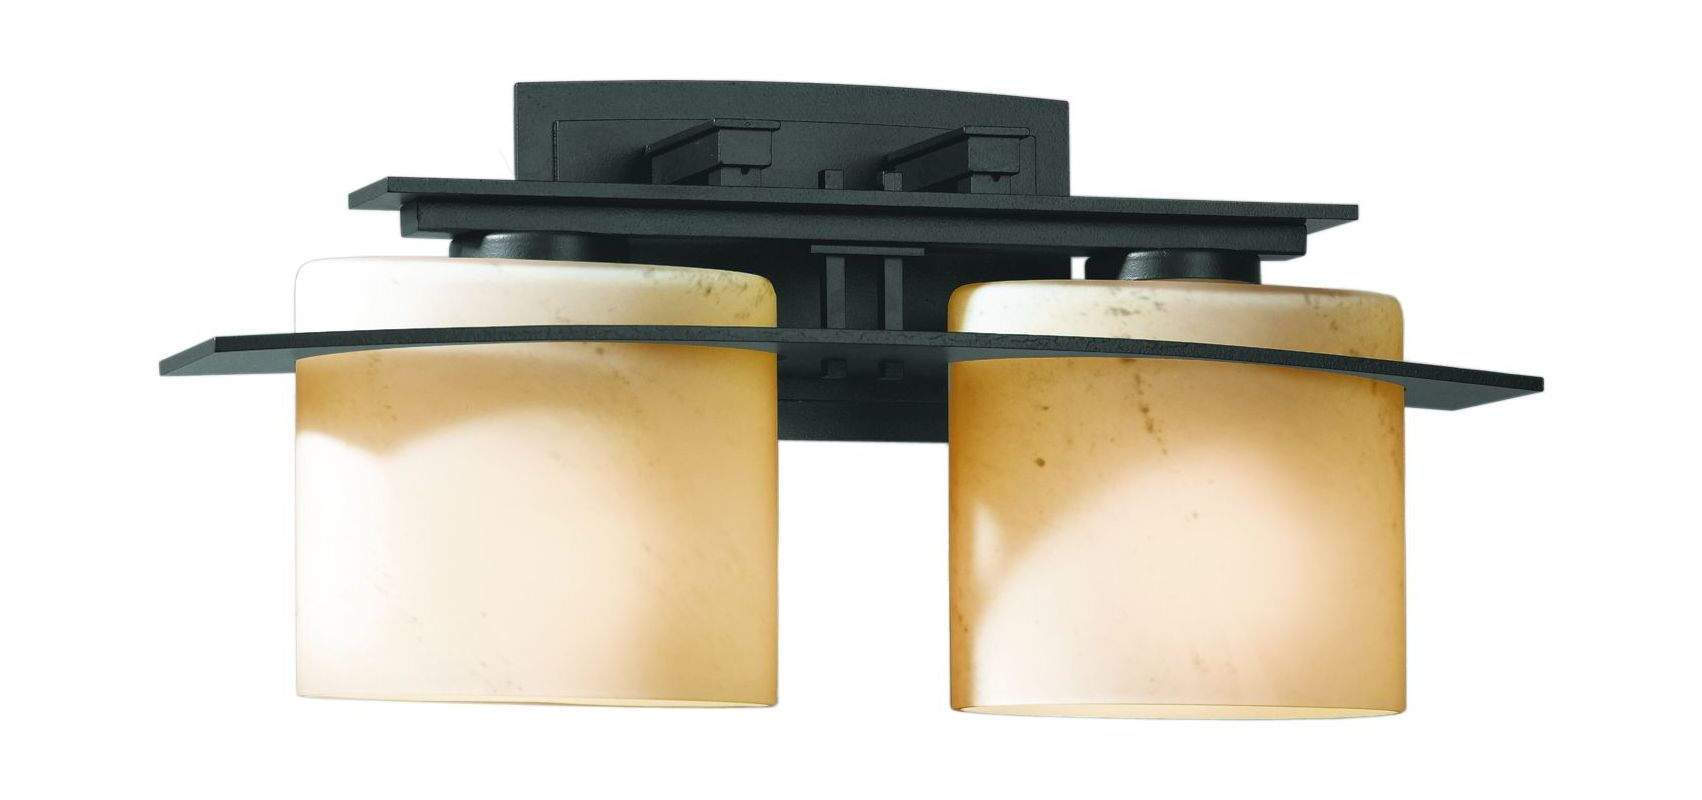 Hubbardton Forge 207522 2 Light Down Lighting Wall Sconce from the Arc